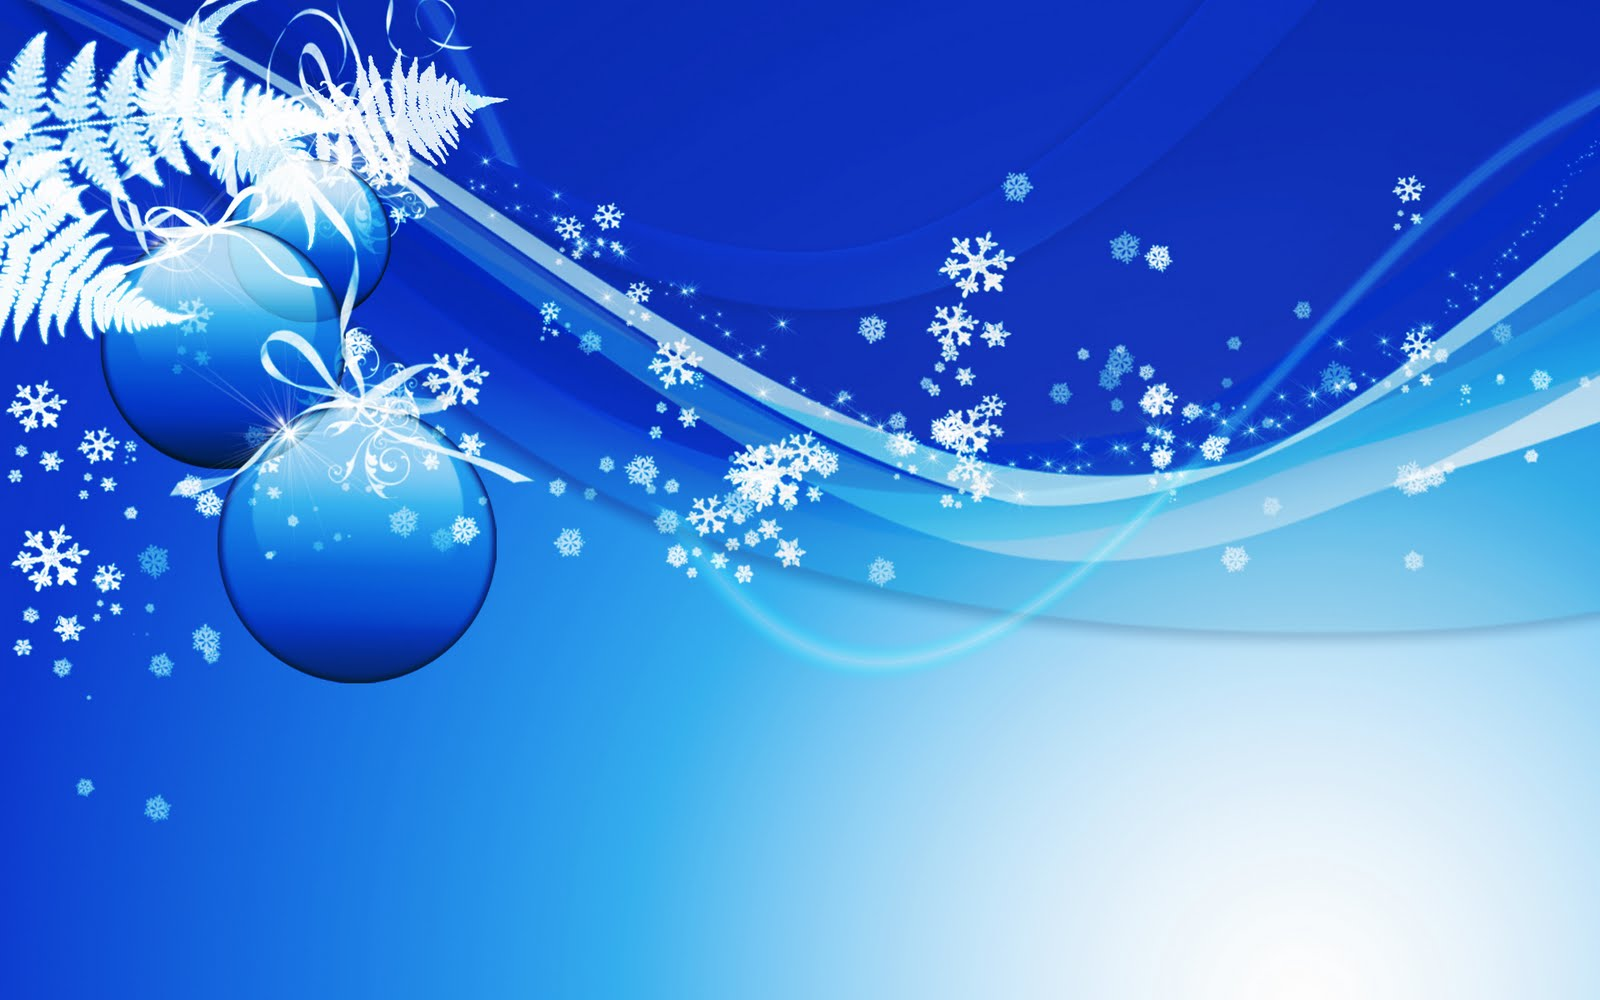 Template background image with christmas snowflakes design background